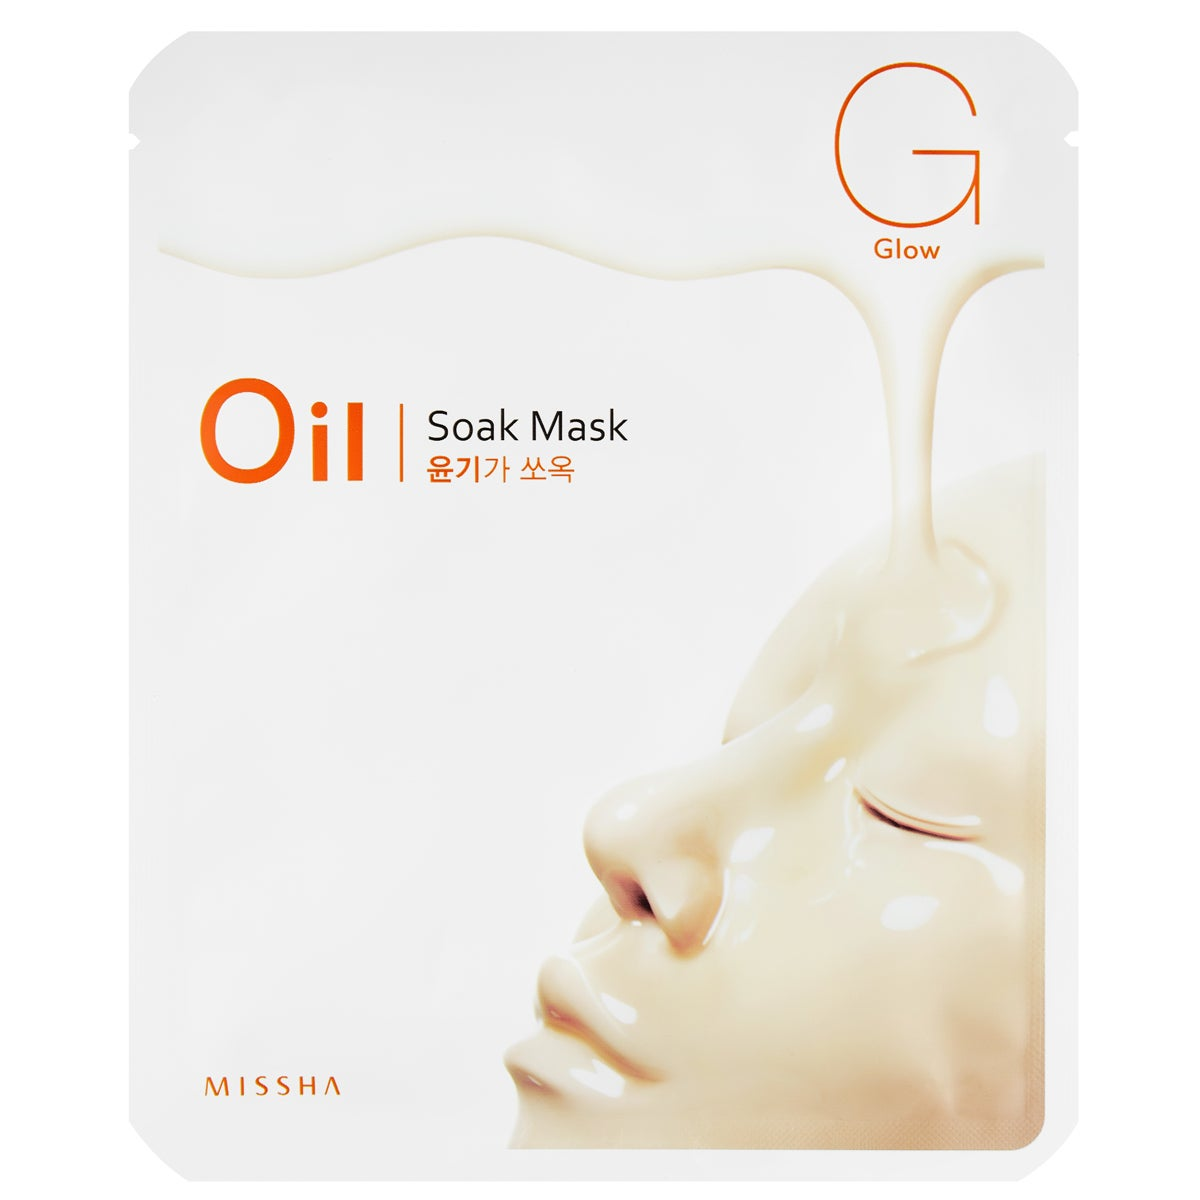 MISSHA Oil-Soak Mask [Glow]